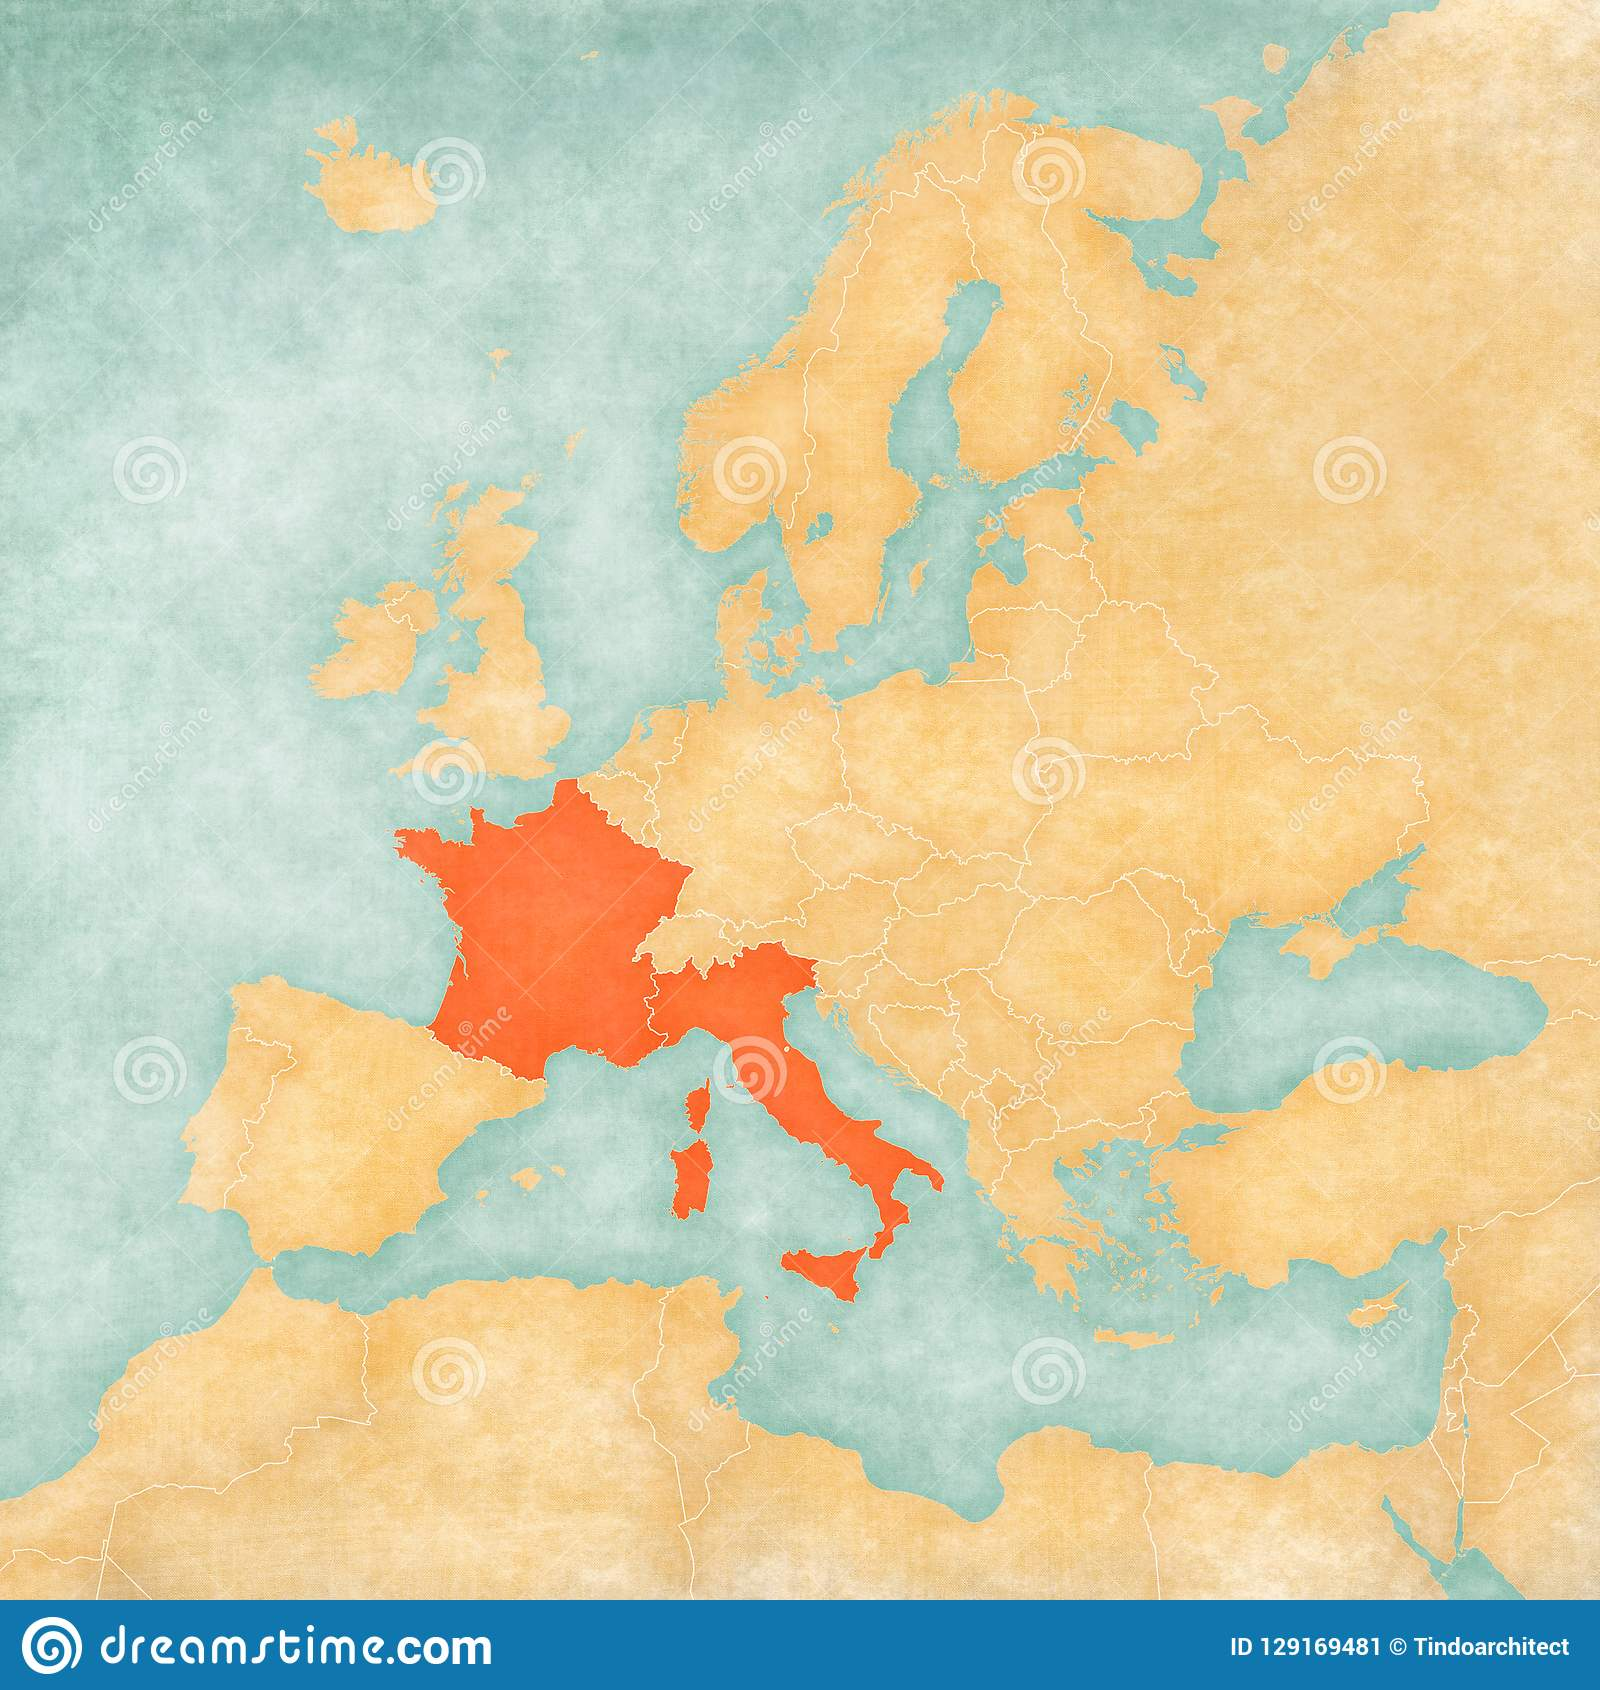 Map Of Europe - France And Italy Stock Illustration - Illustration ...